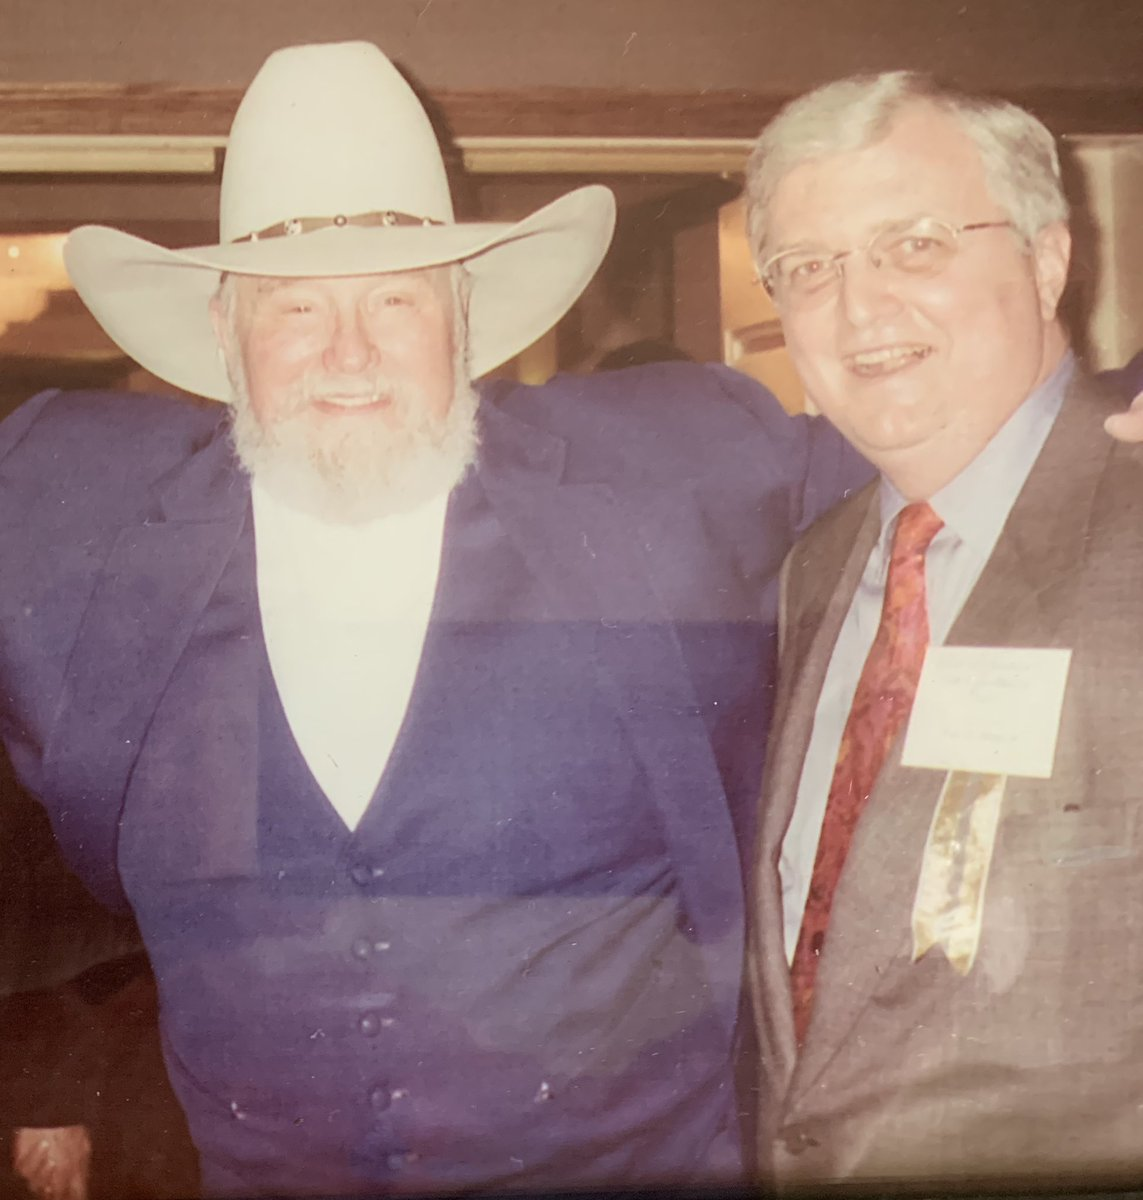 Charlie Daniels was a good man who put God, family & country first.  #RipCharlieDaniels https://t.co/0DibKWIq04